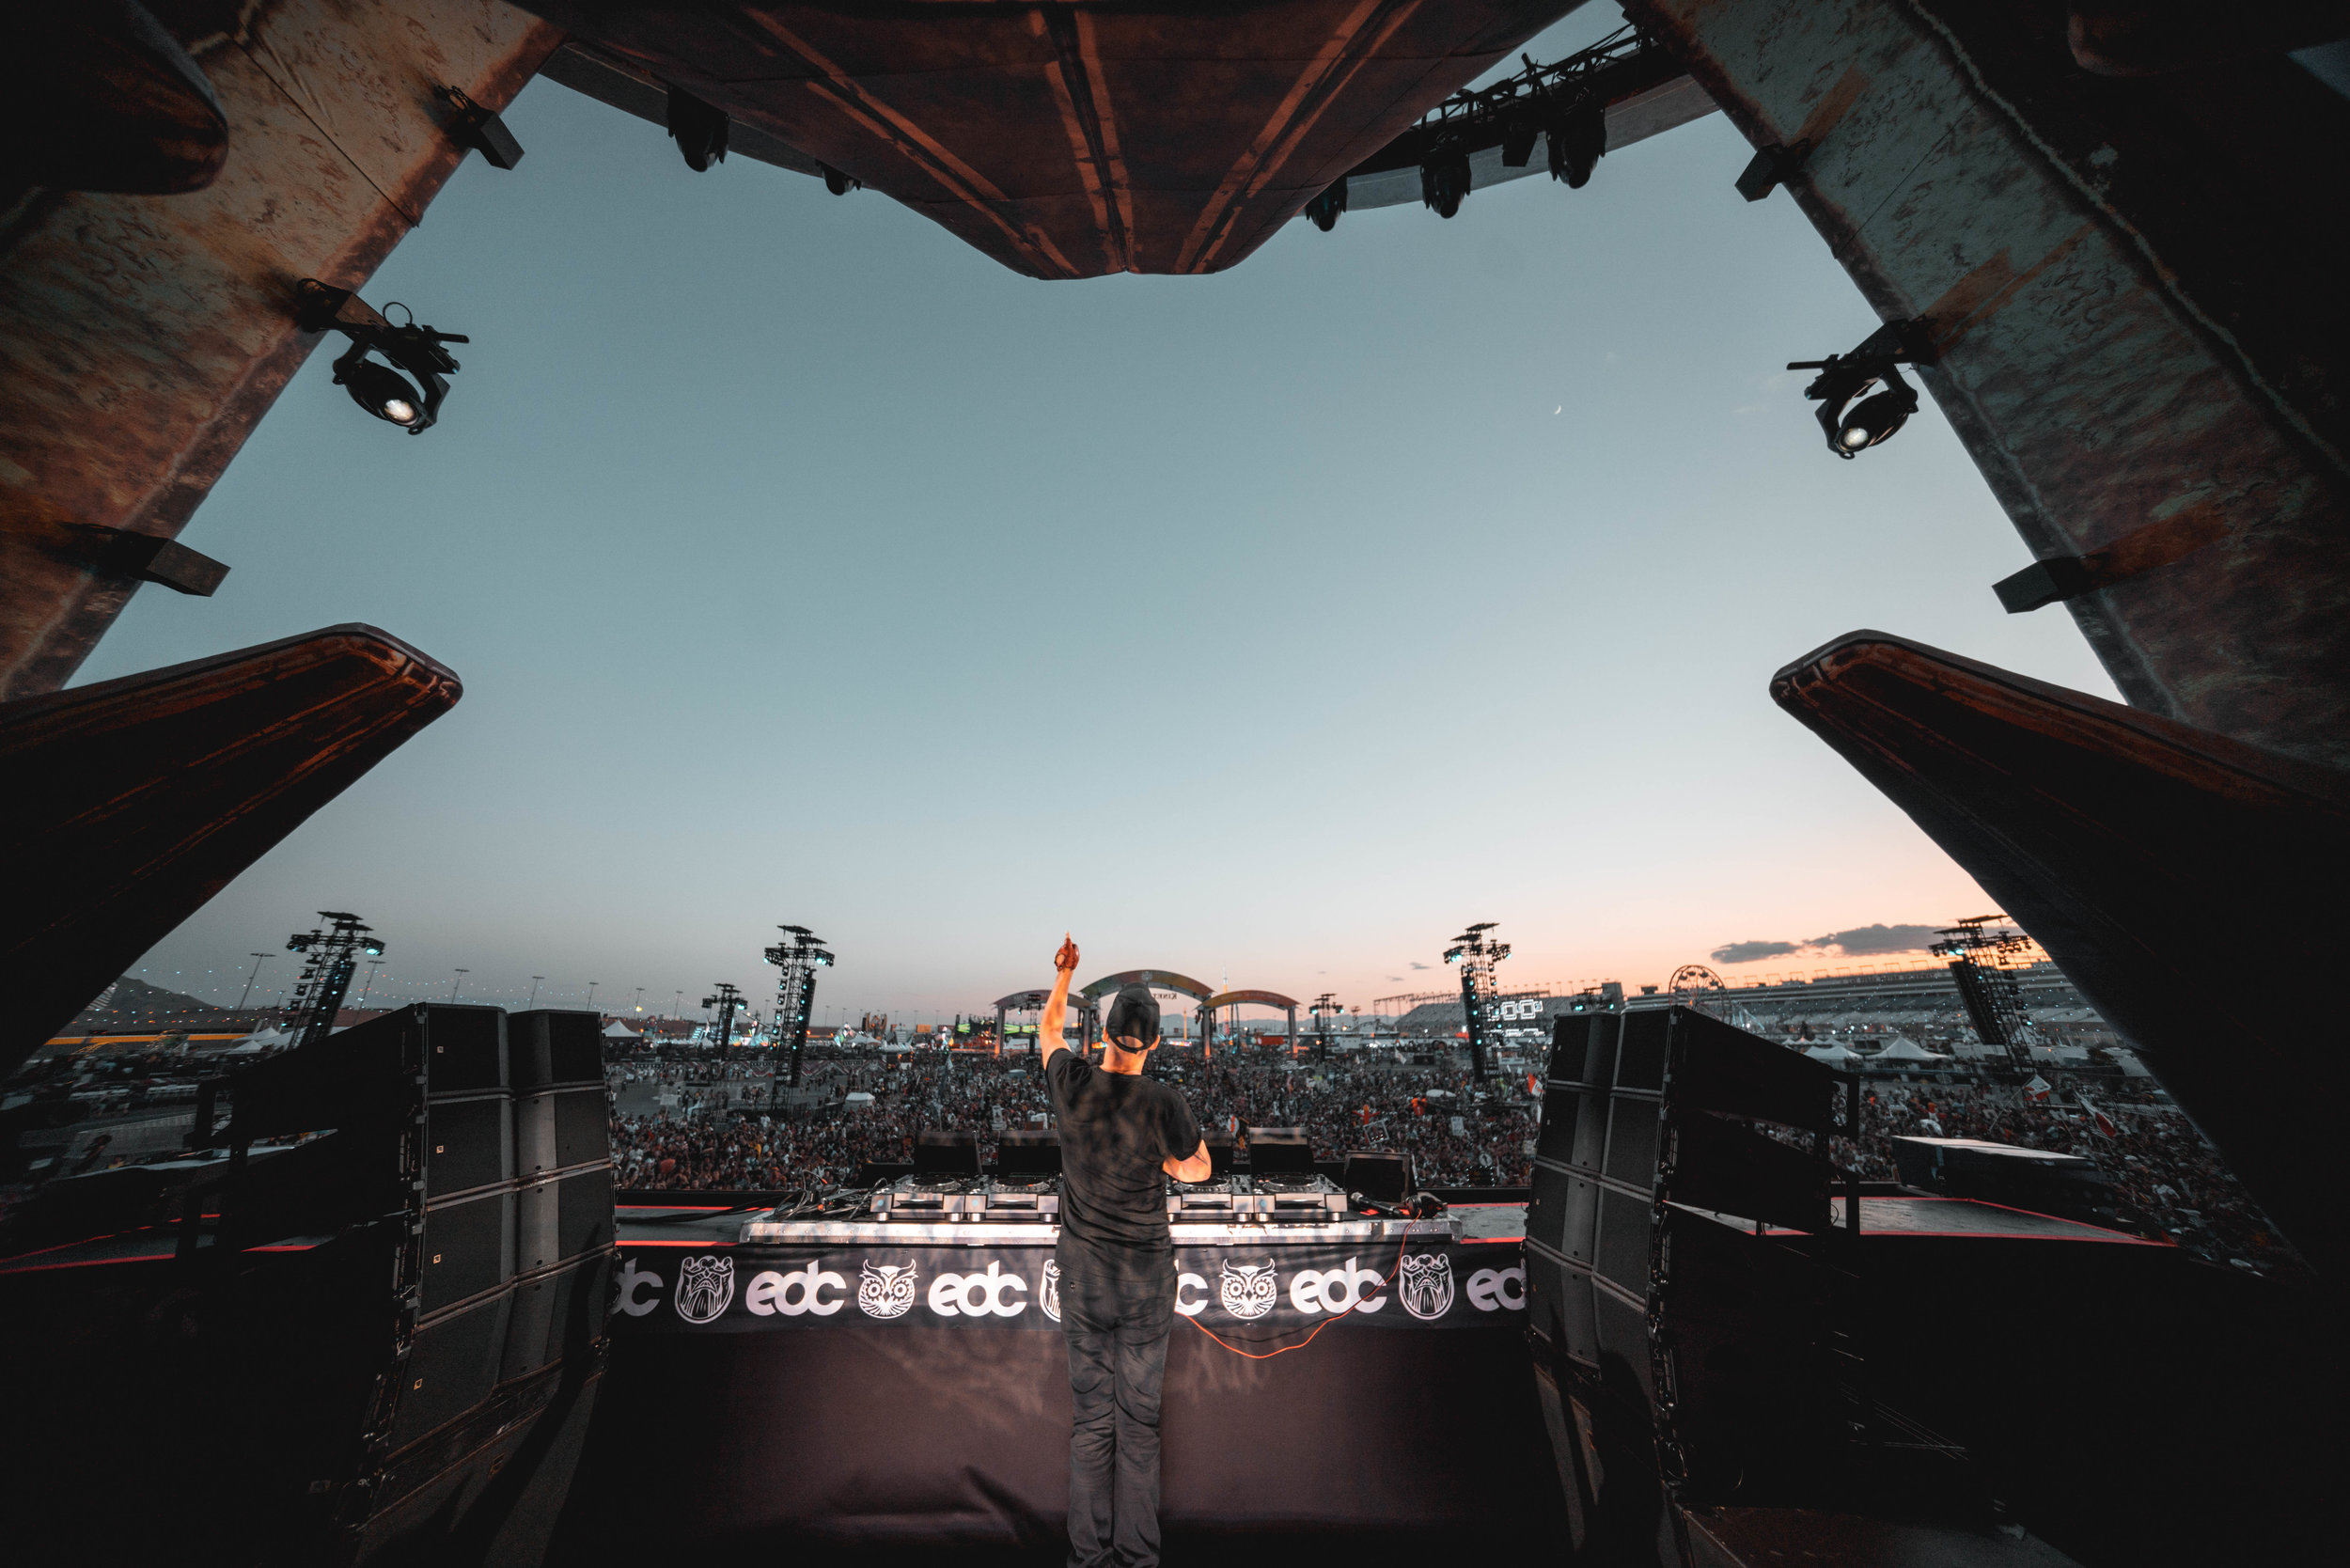 Artist: Dombresky   Festival: Electric Daisy Carnival  Event Photography and Highlight Video